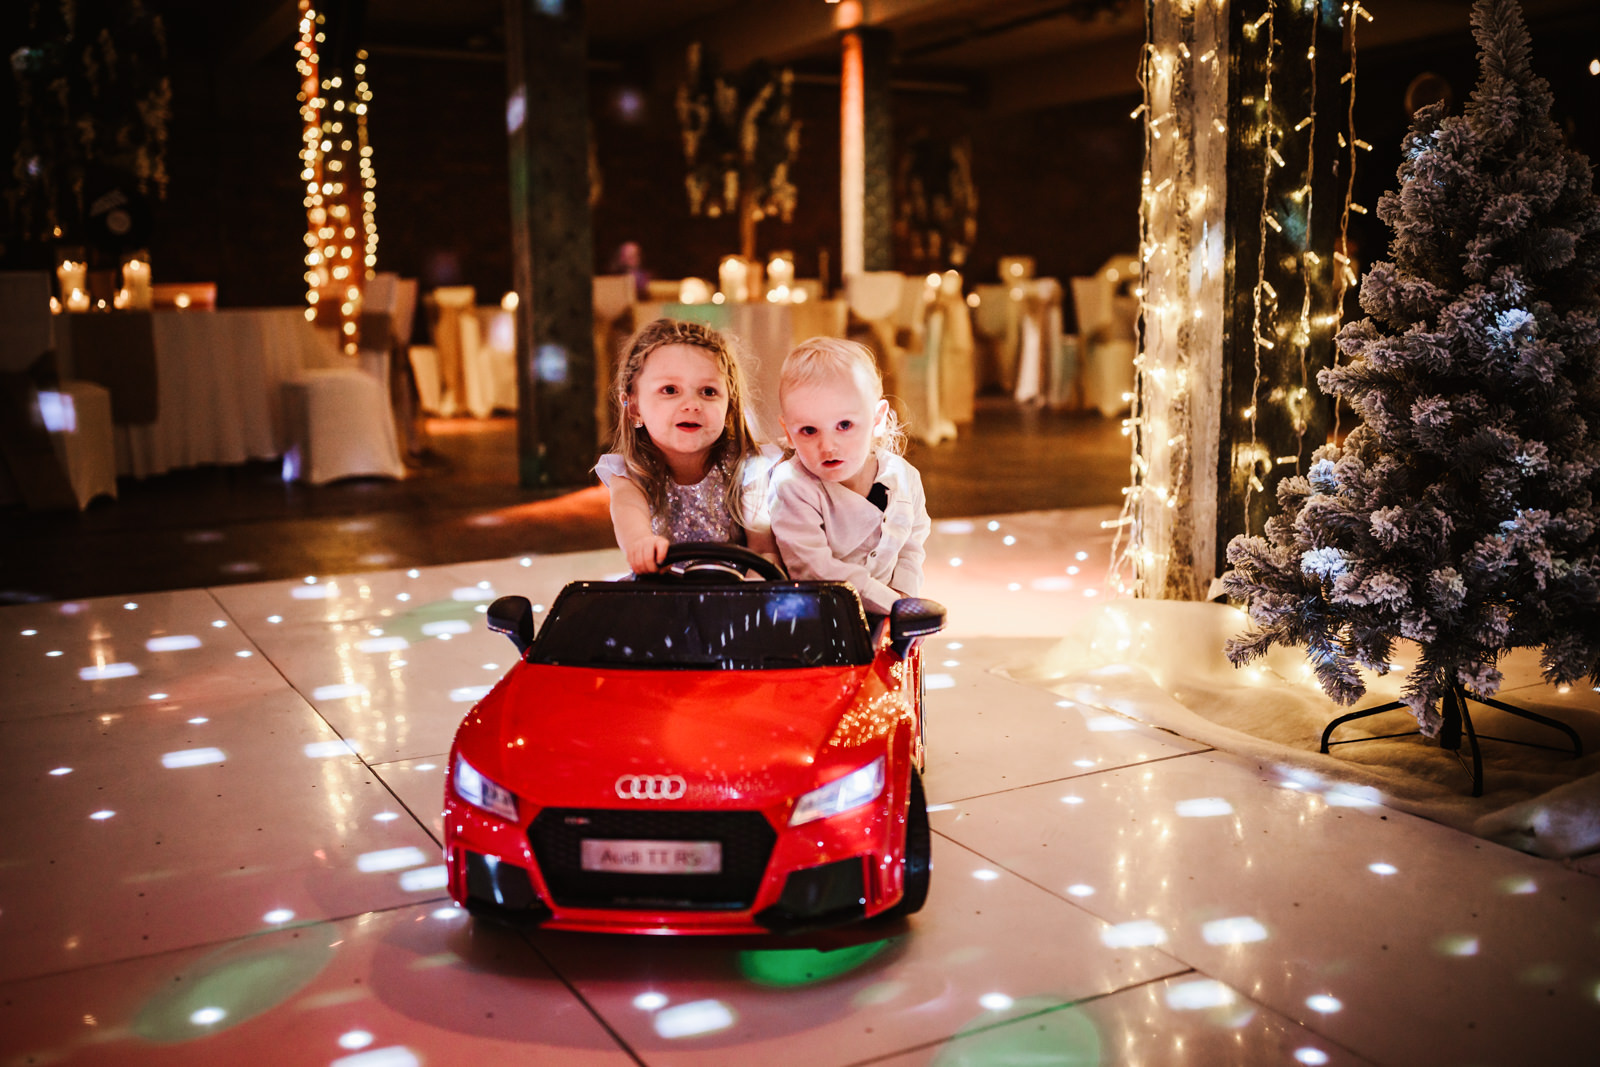 Kids playing in toy car